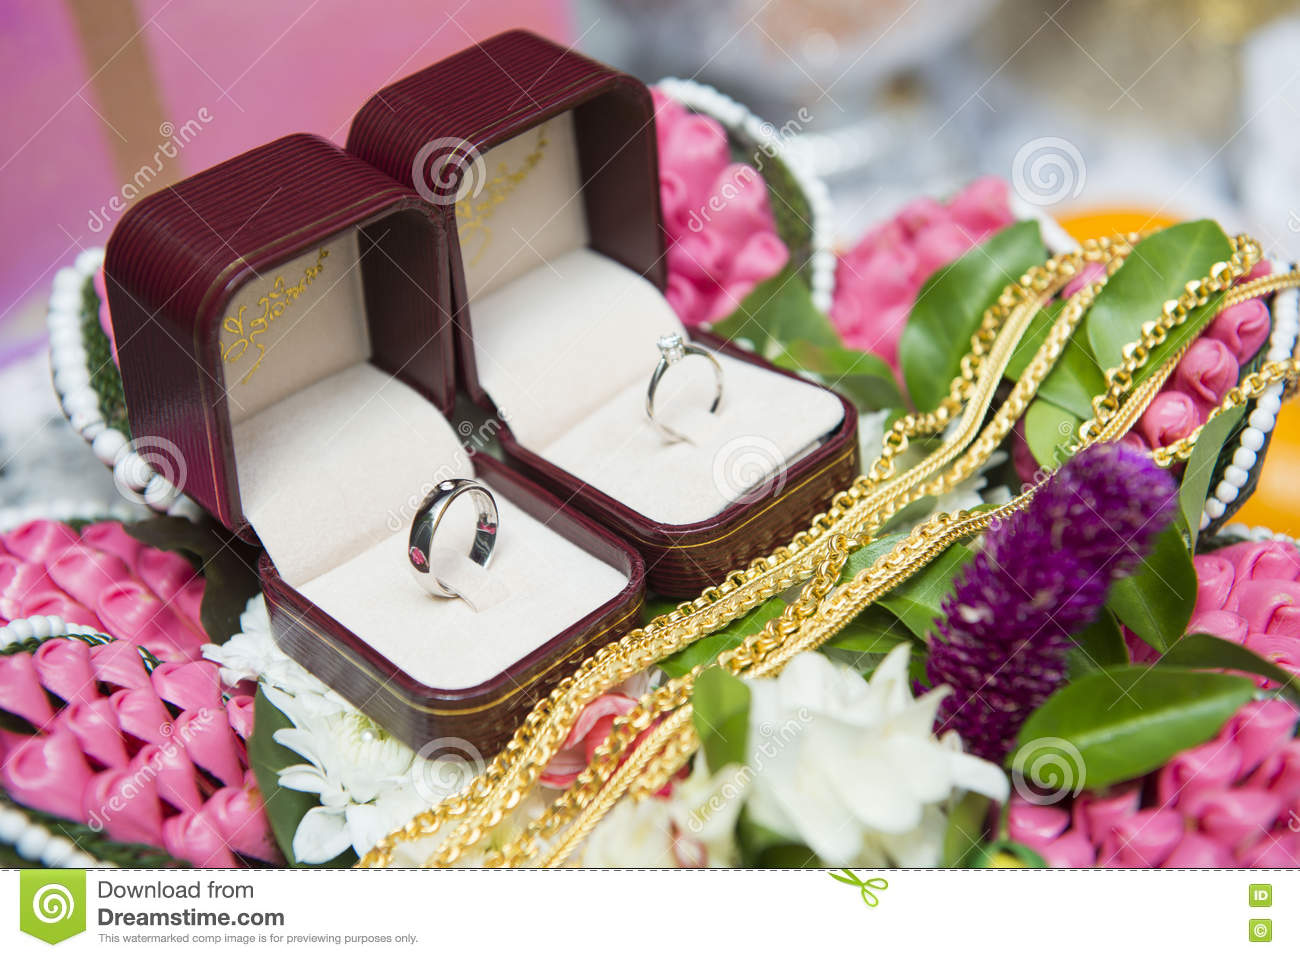 Wedding Ceremony Gift: Tray Of Gifts From The Groom In Engagement Ceremony Stock